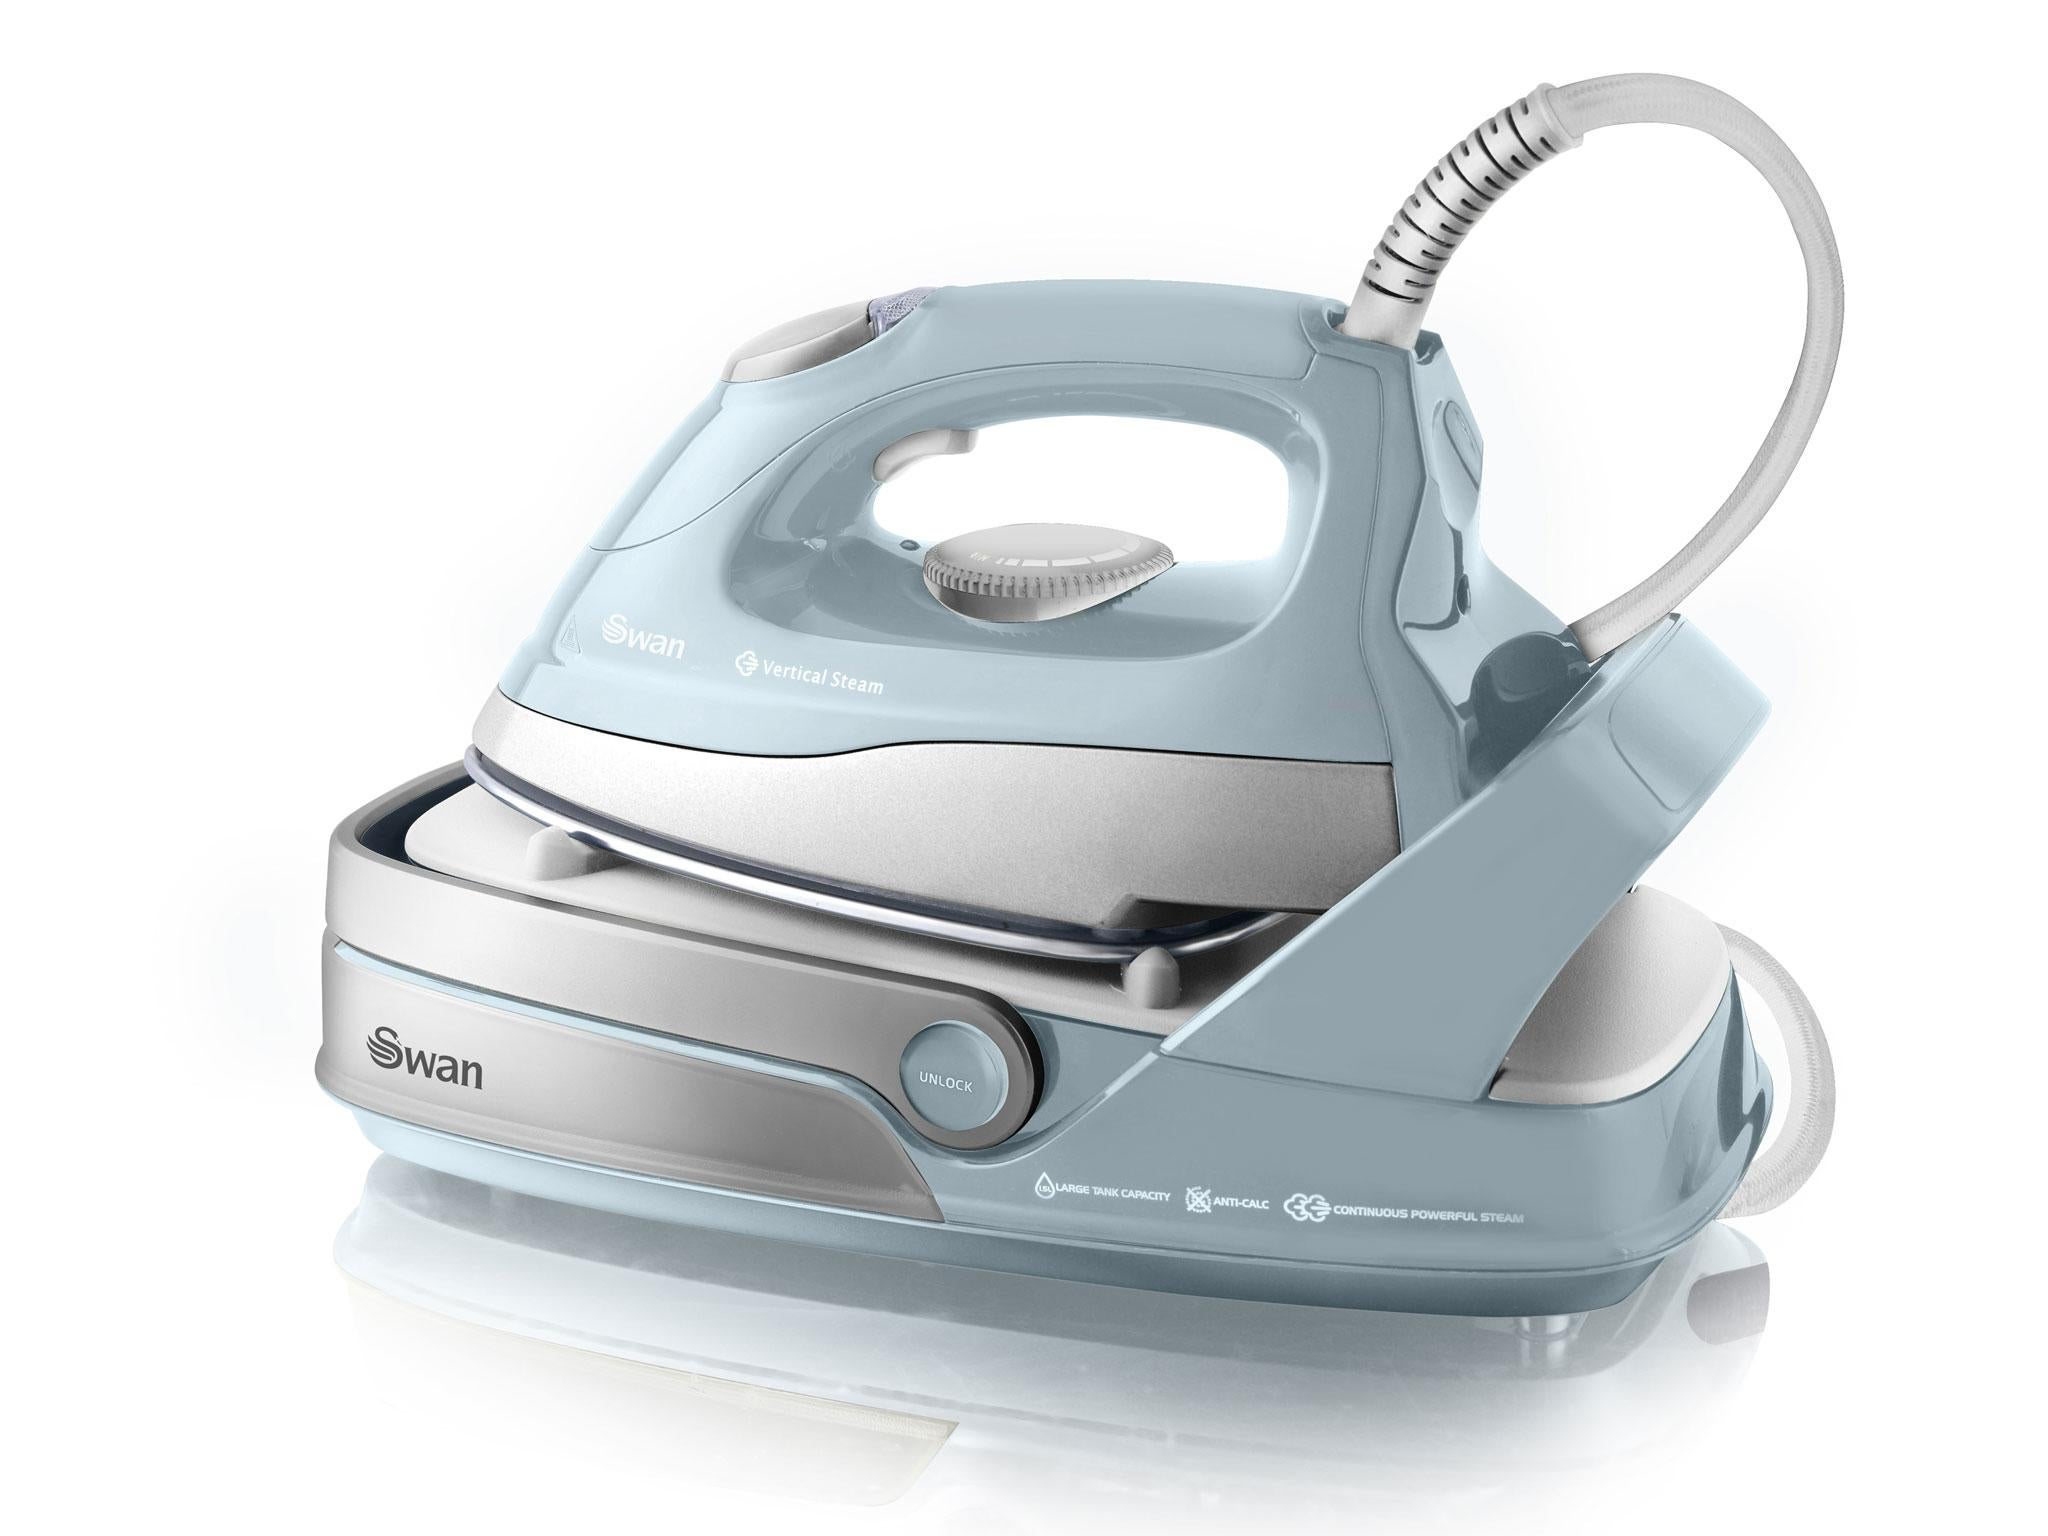 8 best steam generator irons | The Independent